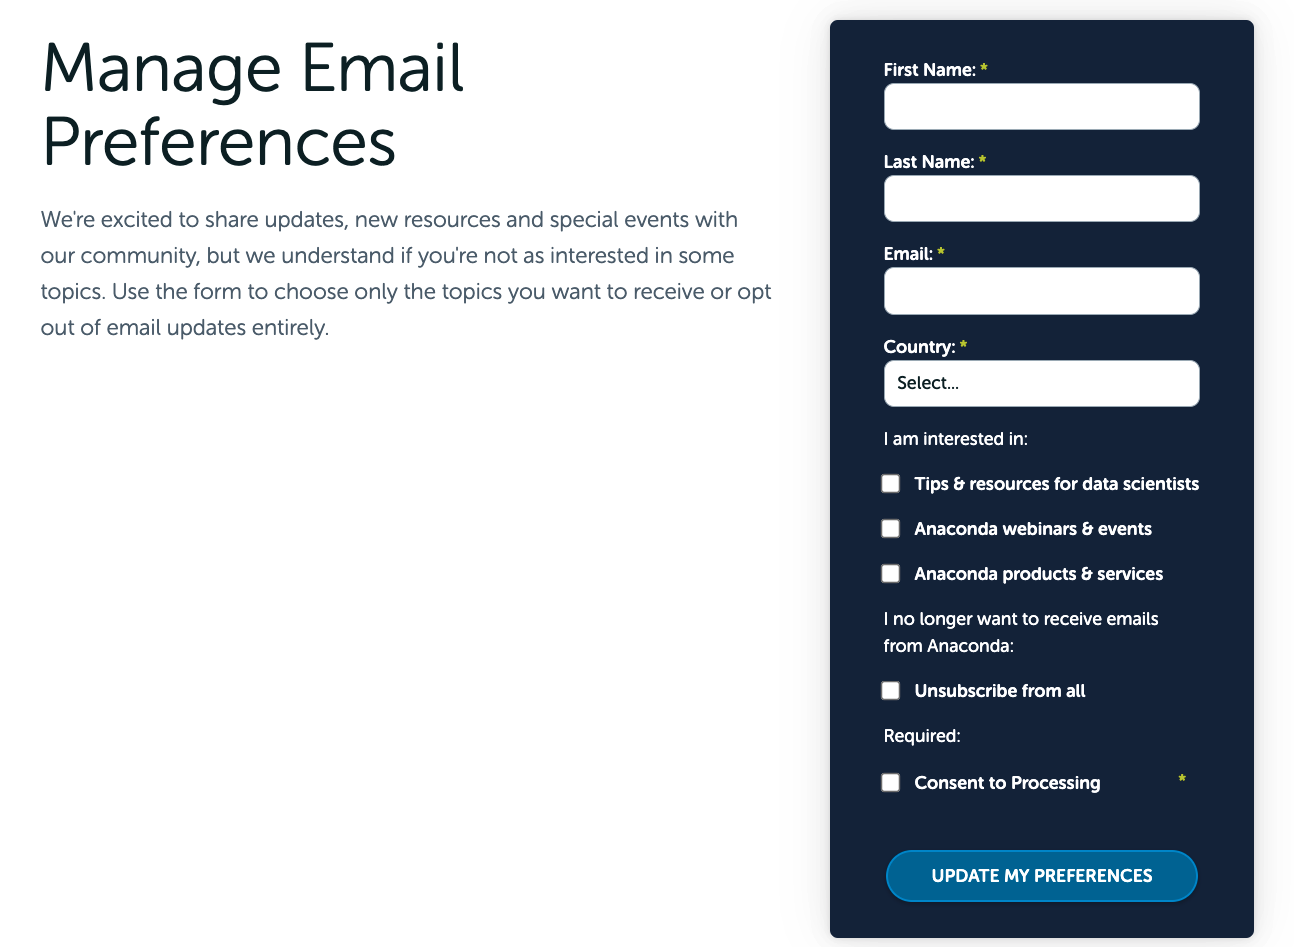 ../../_images/ce_manage_email_preferences2.png